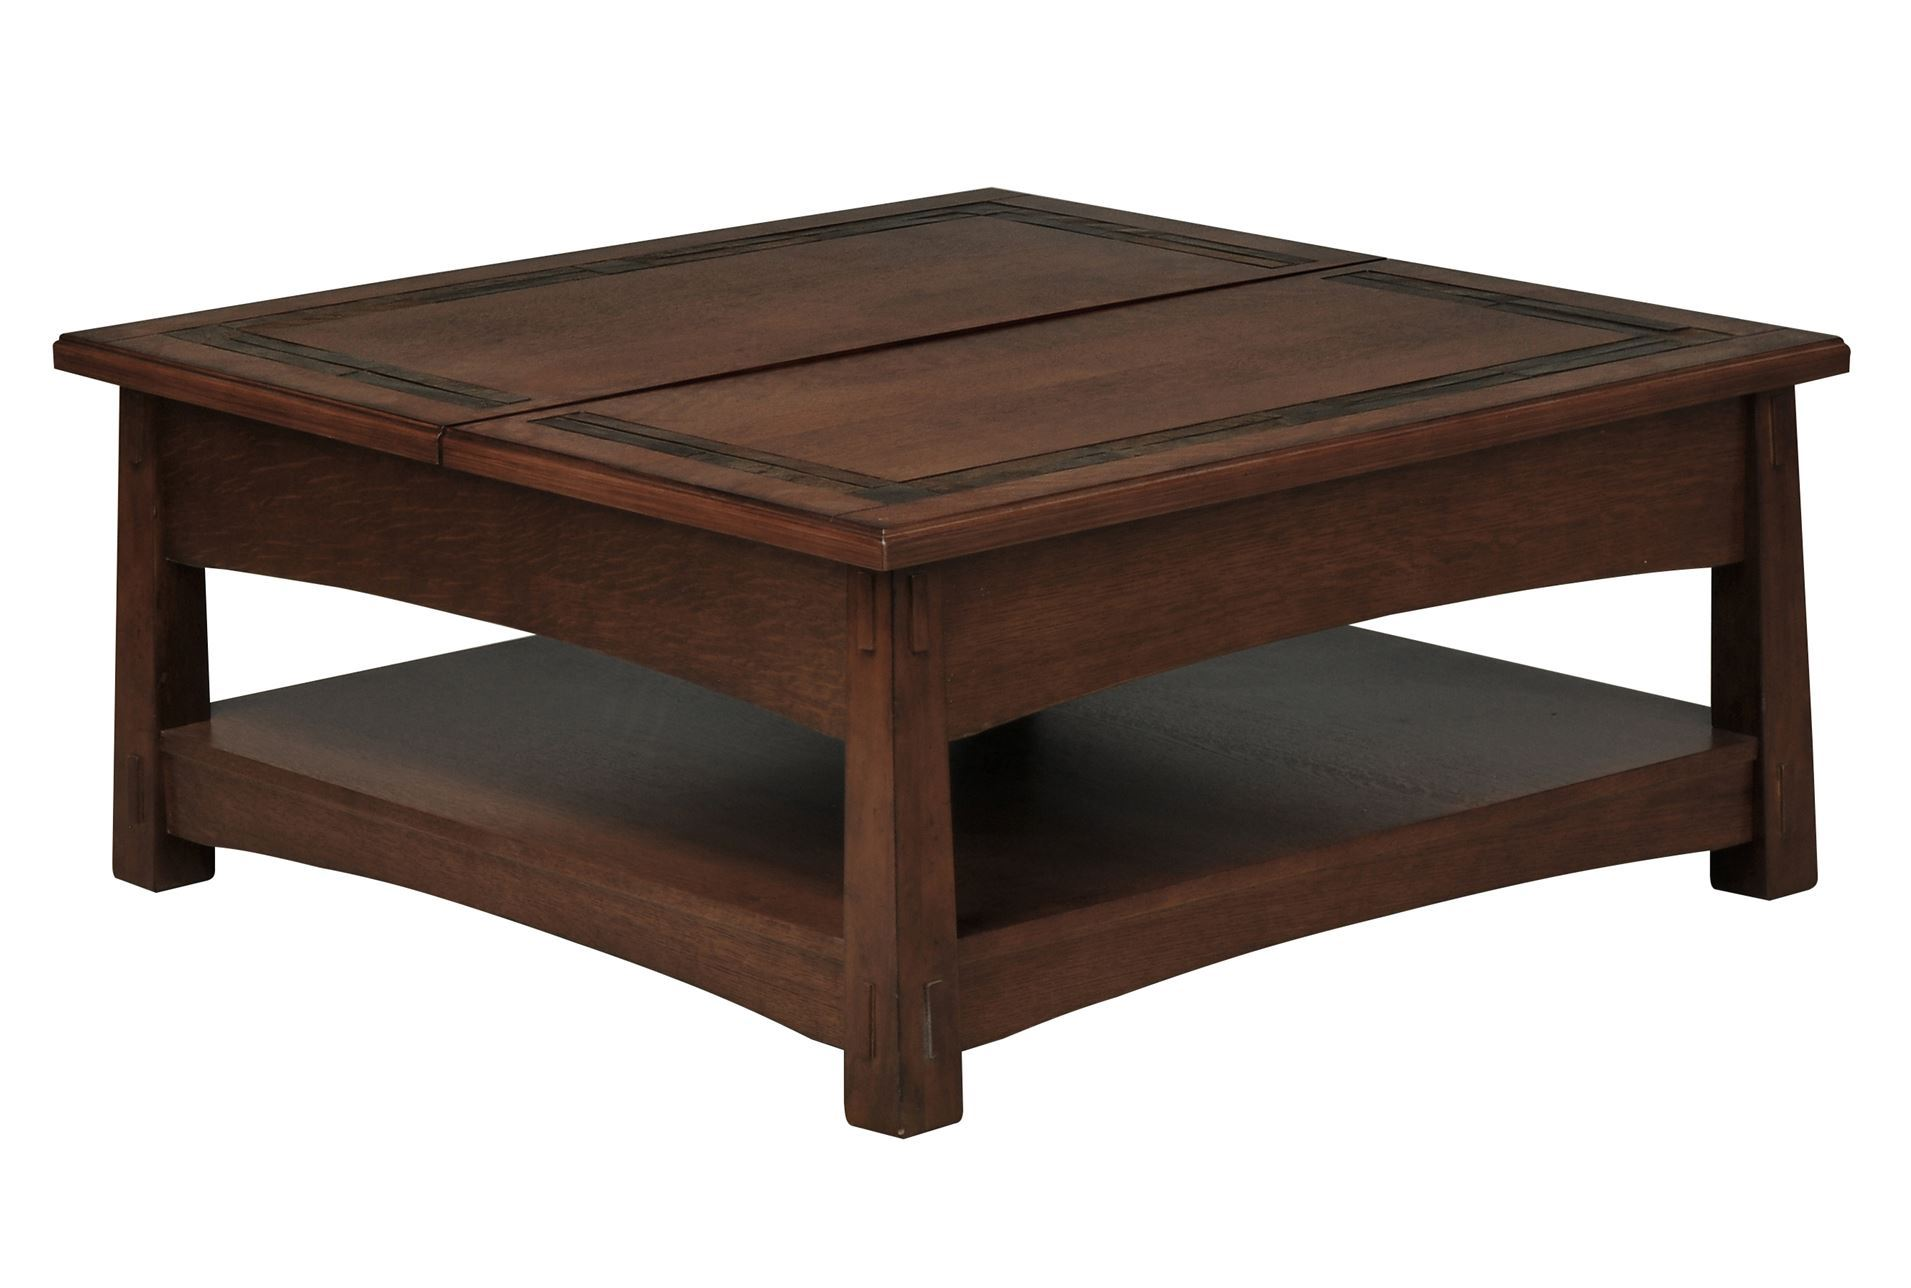 Extra large square coffee table 2 Large square coffee table